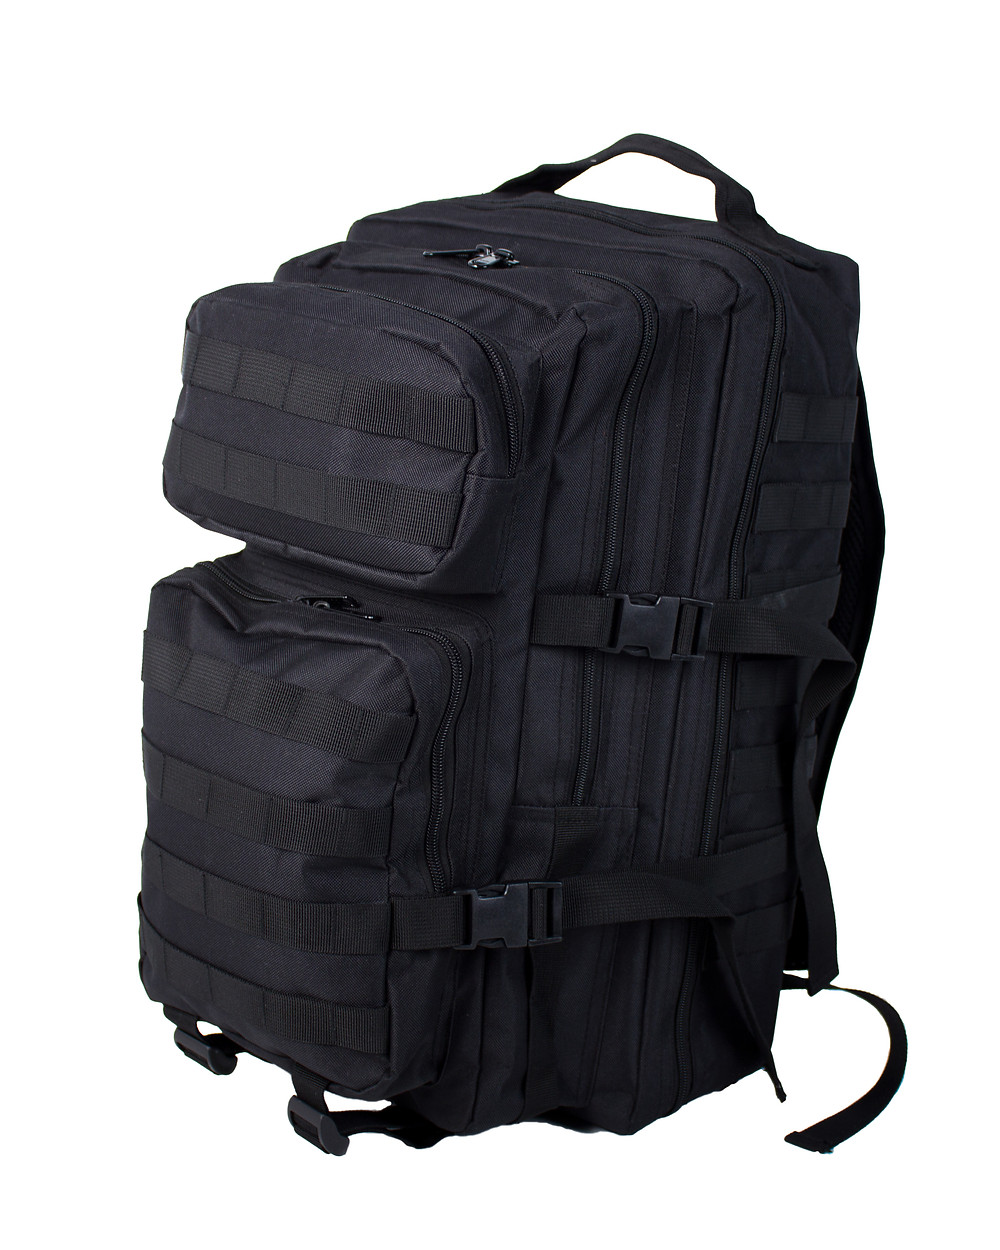 CHK-SHIELD MK1 Medium 30l Rucksack